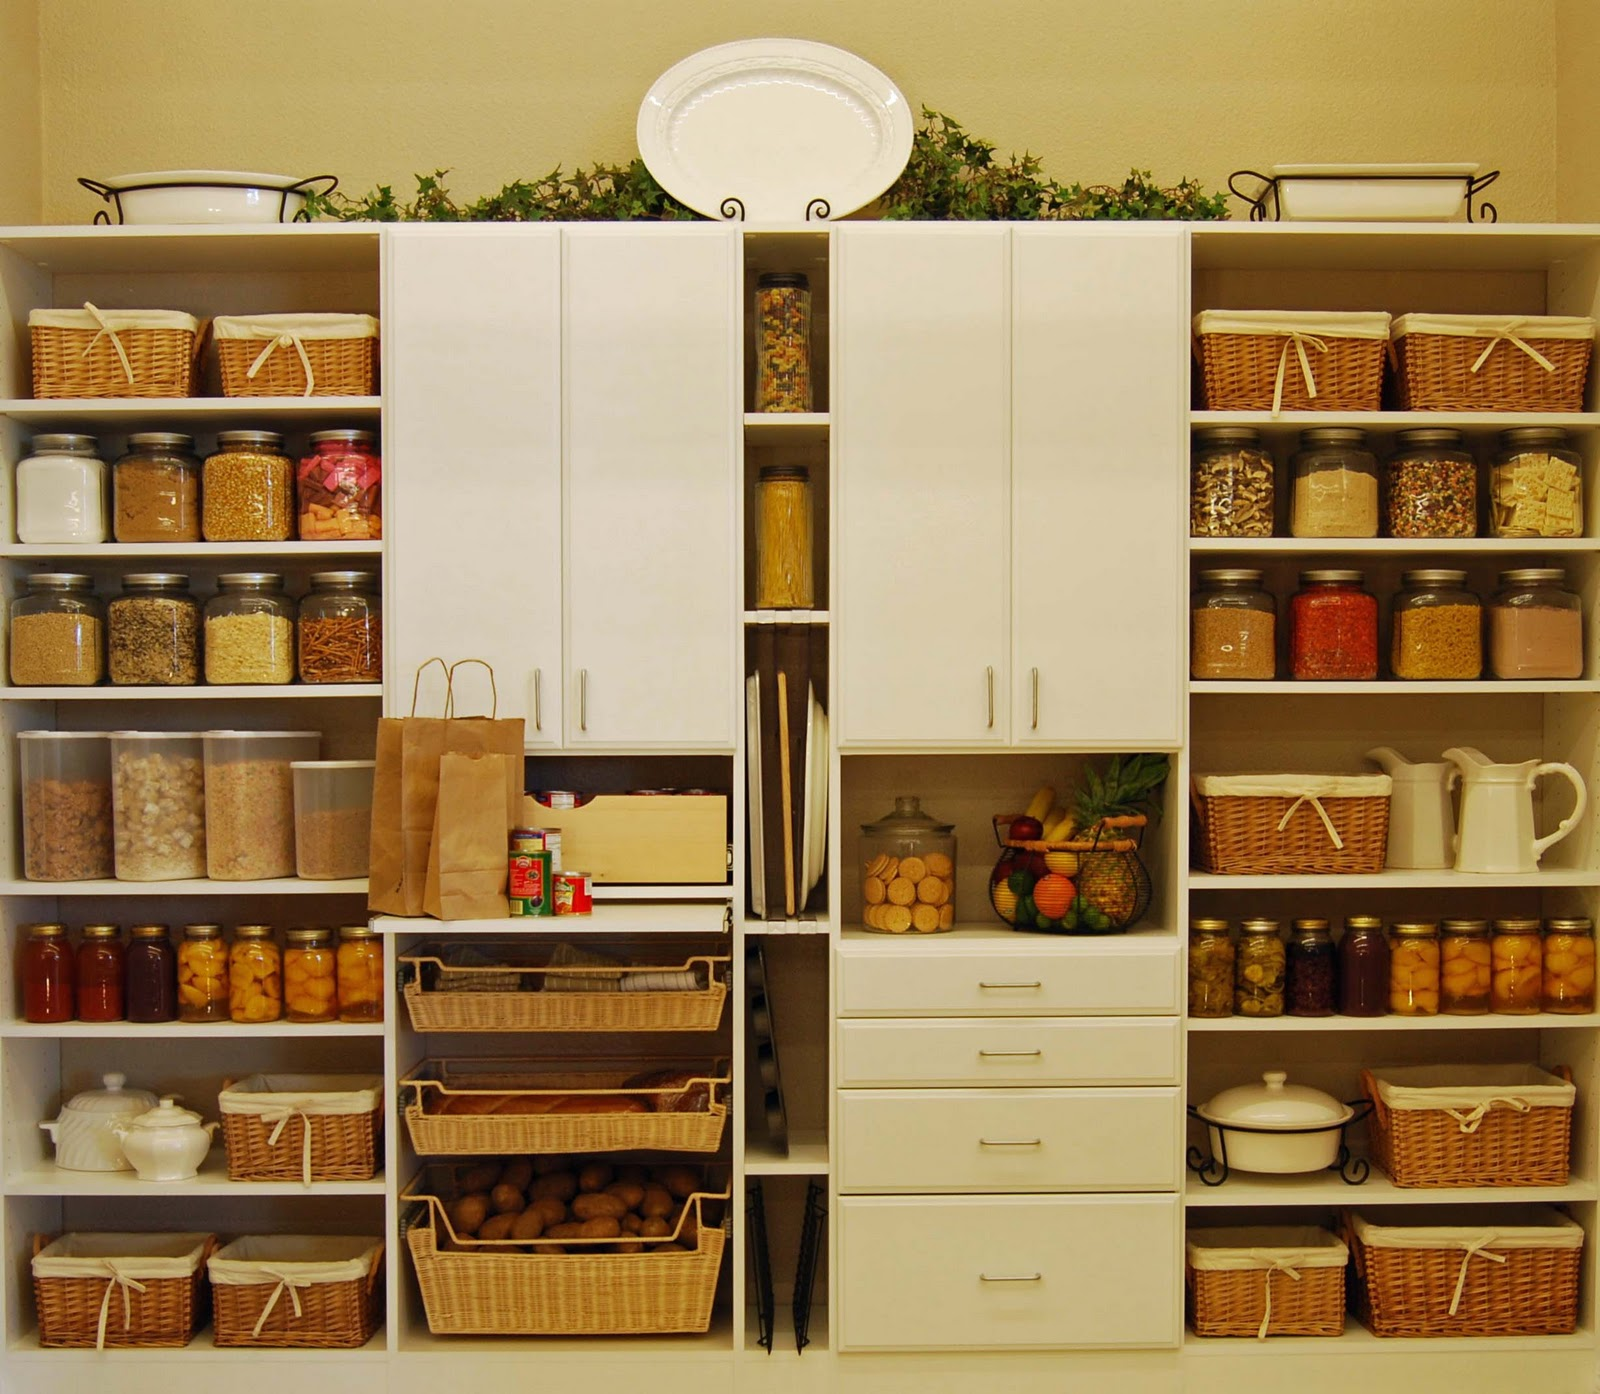 kitchen pantry ideas with form and function kitchen cabinet definition Home Decorating Trends Homedit